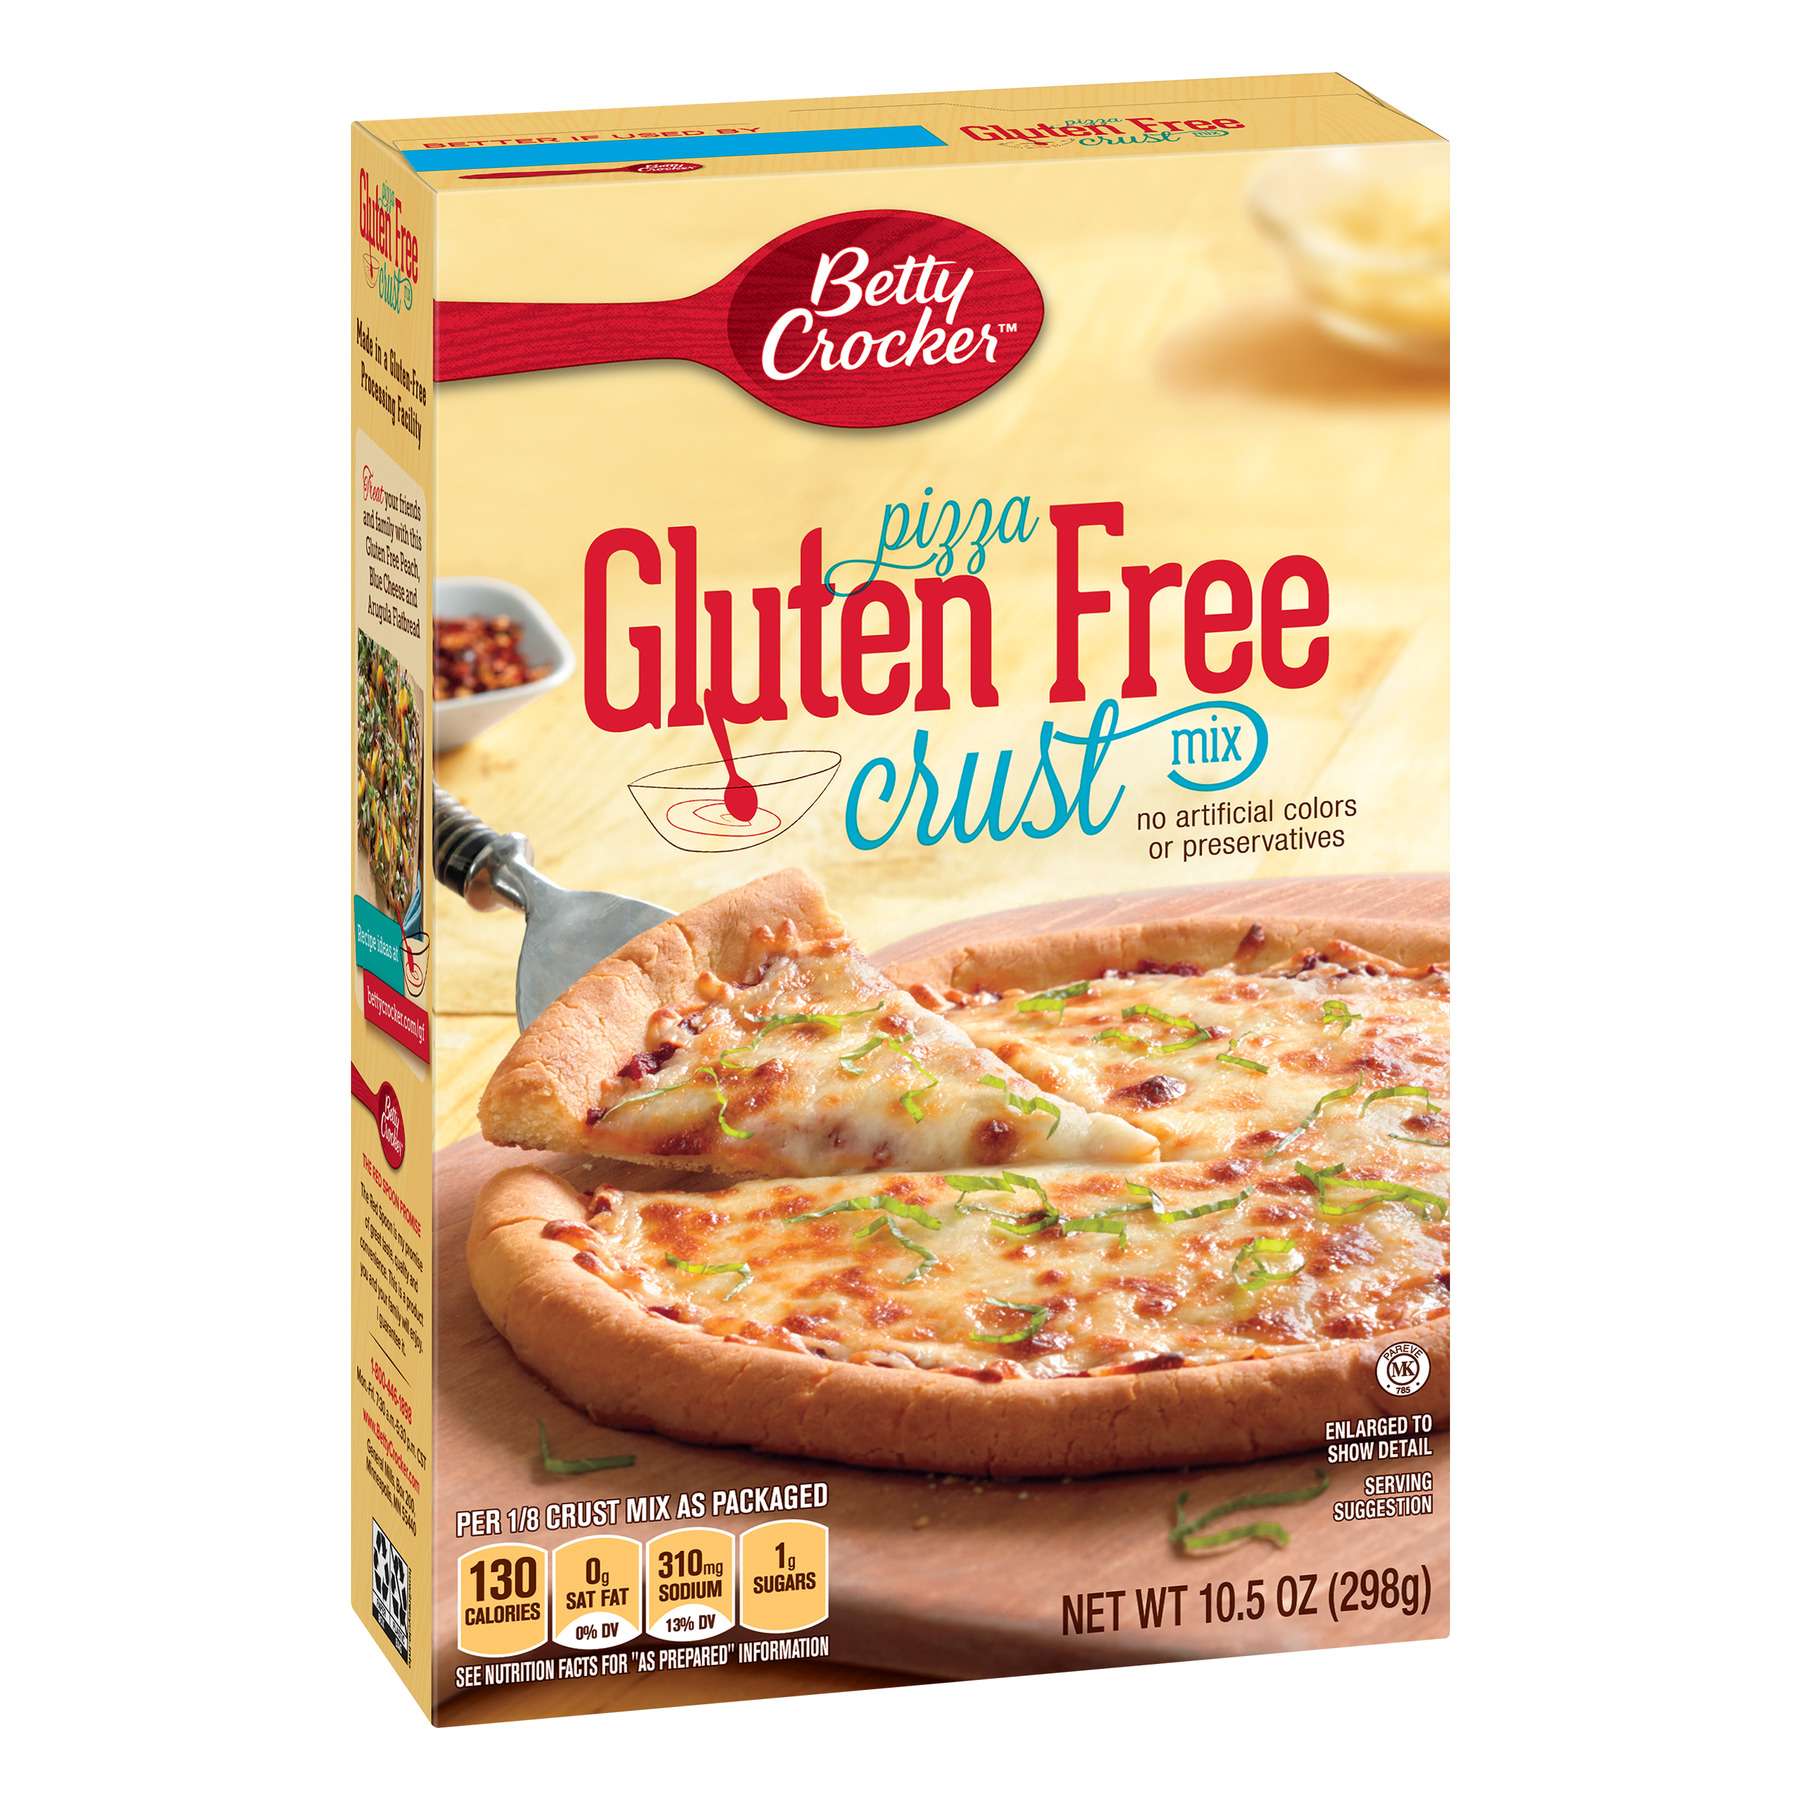 Betty Crocker Gluten Free Pizza Crust Mix, 10.5 oz